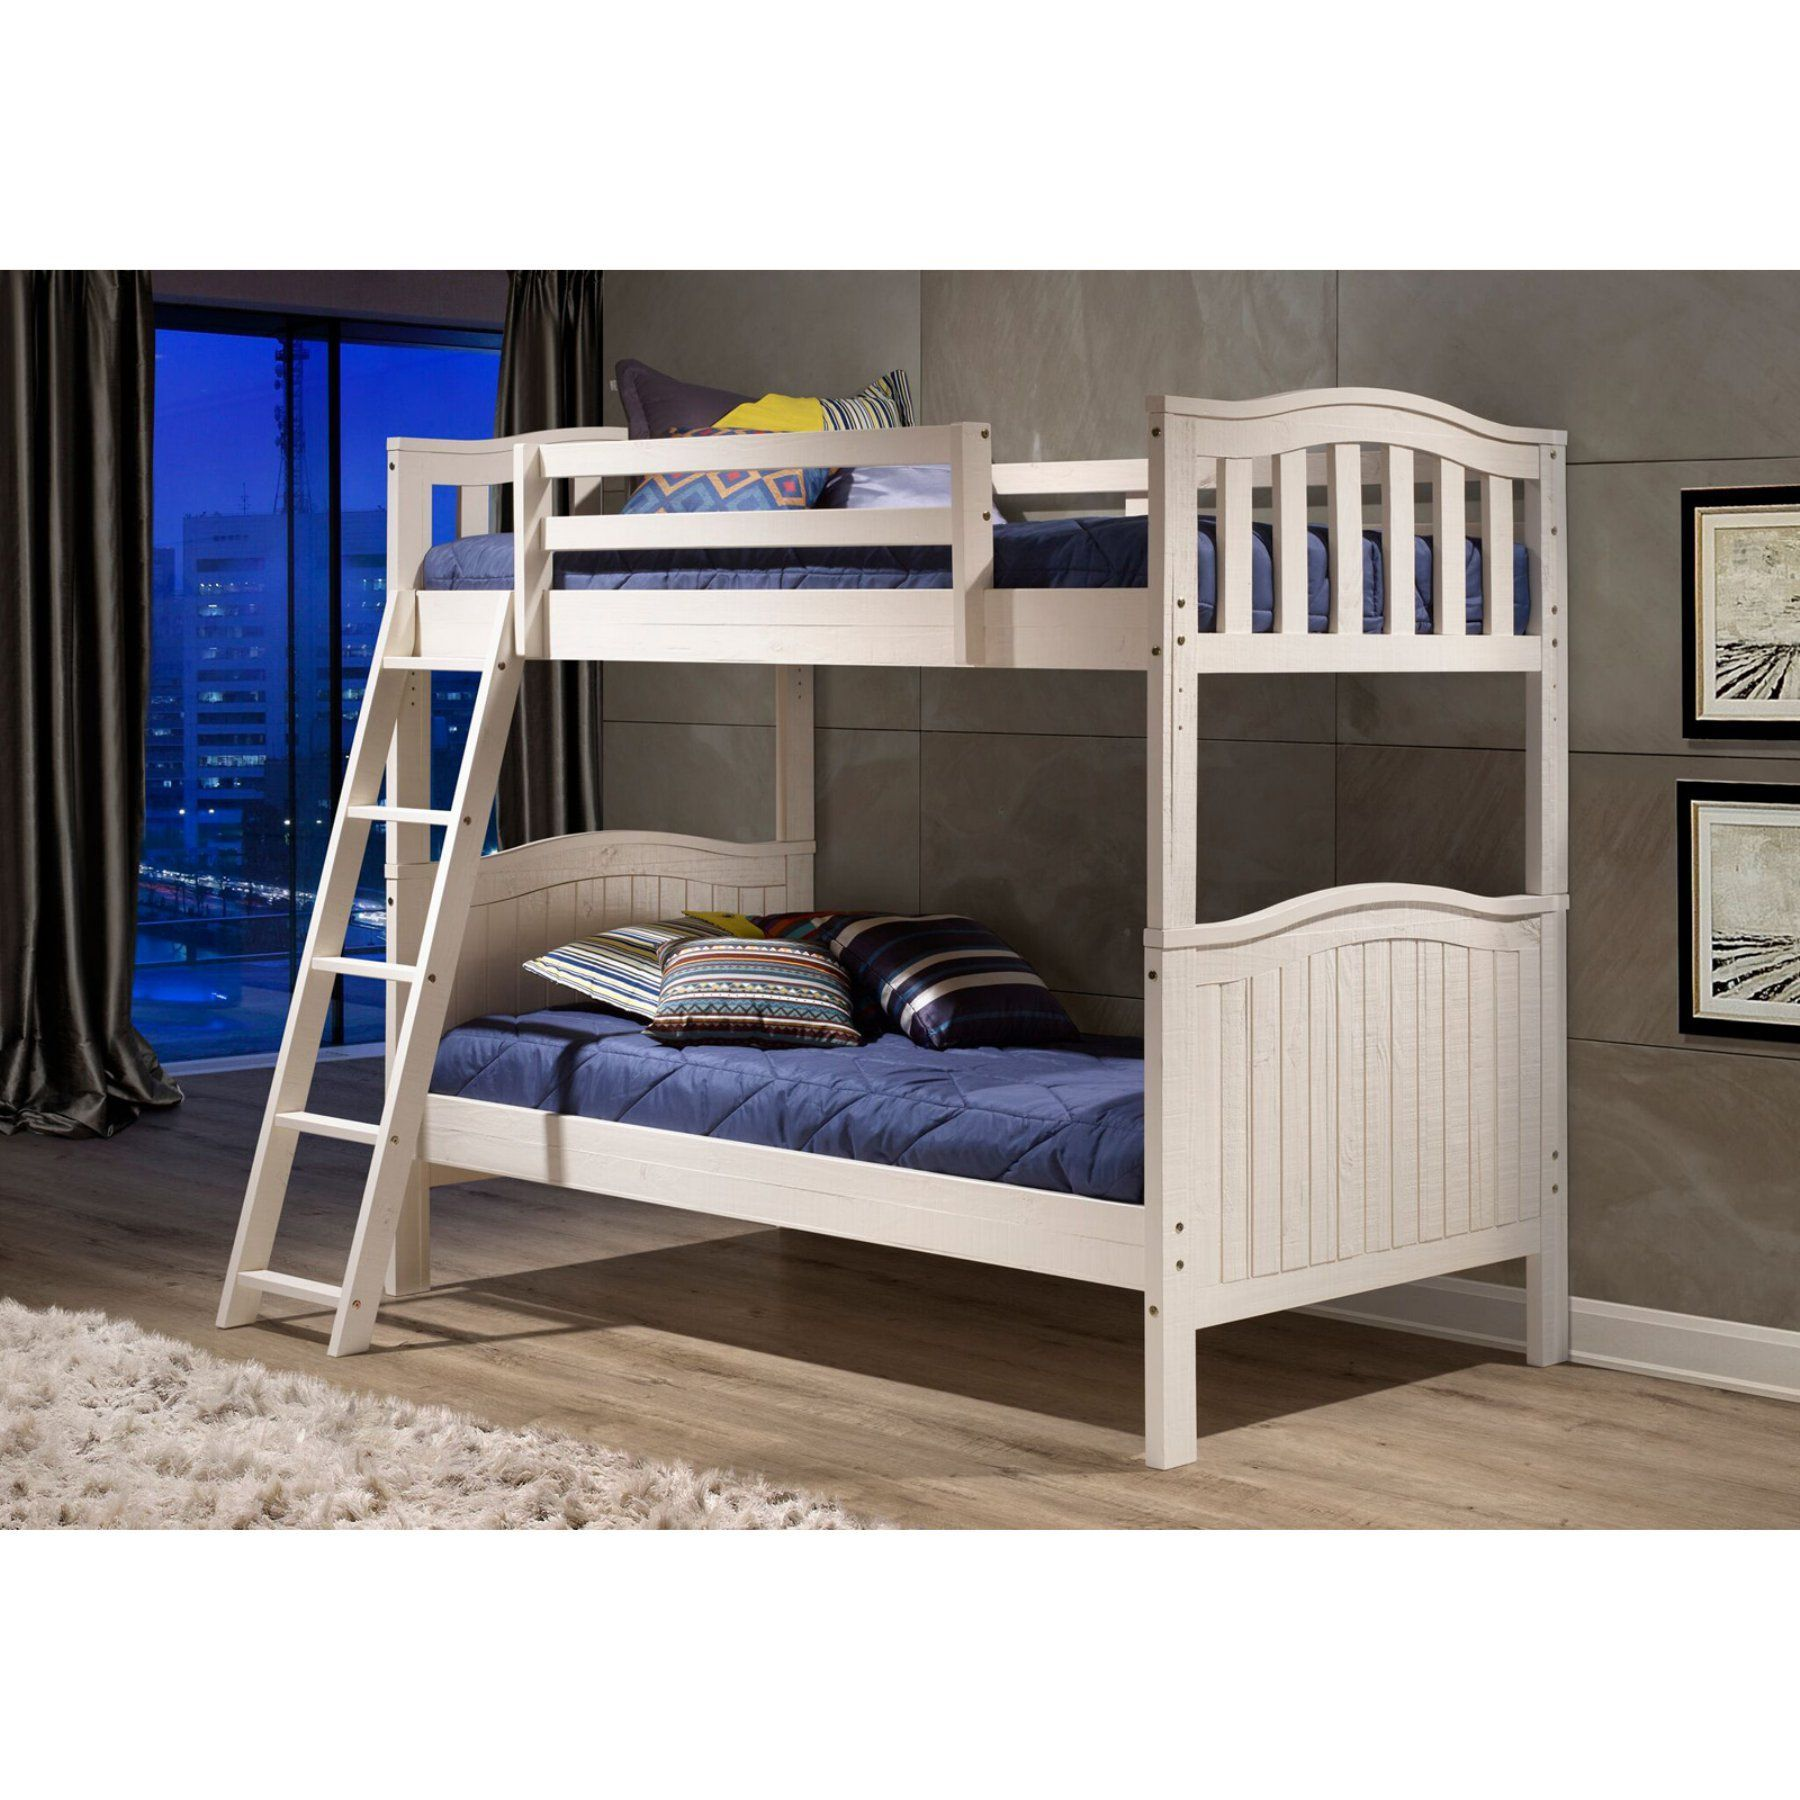 Twin loft bed ideas  Woodcrest Pine Ridge Twin over Twin Bunk Bed  Distressed White